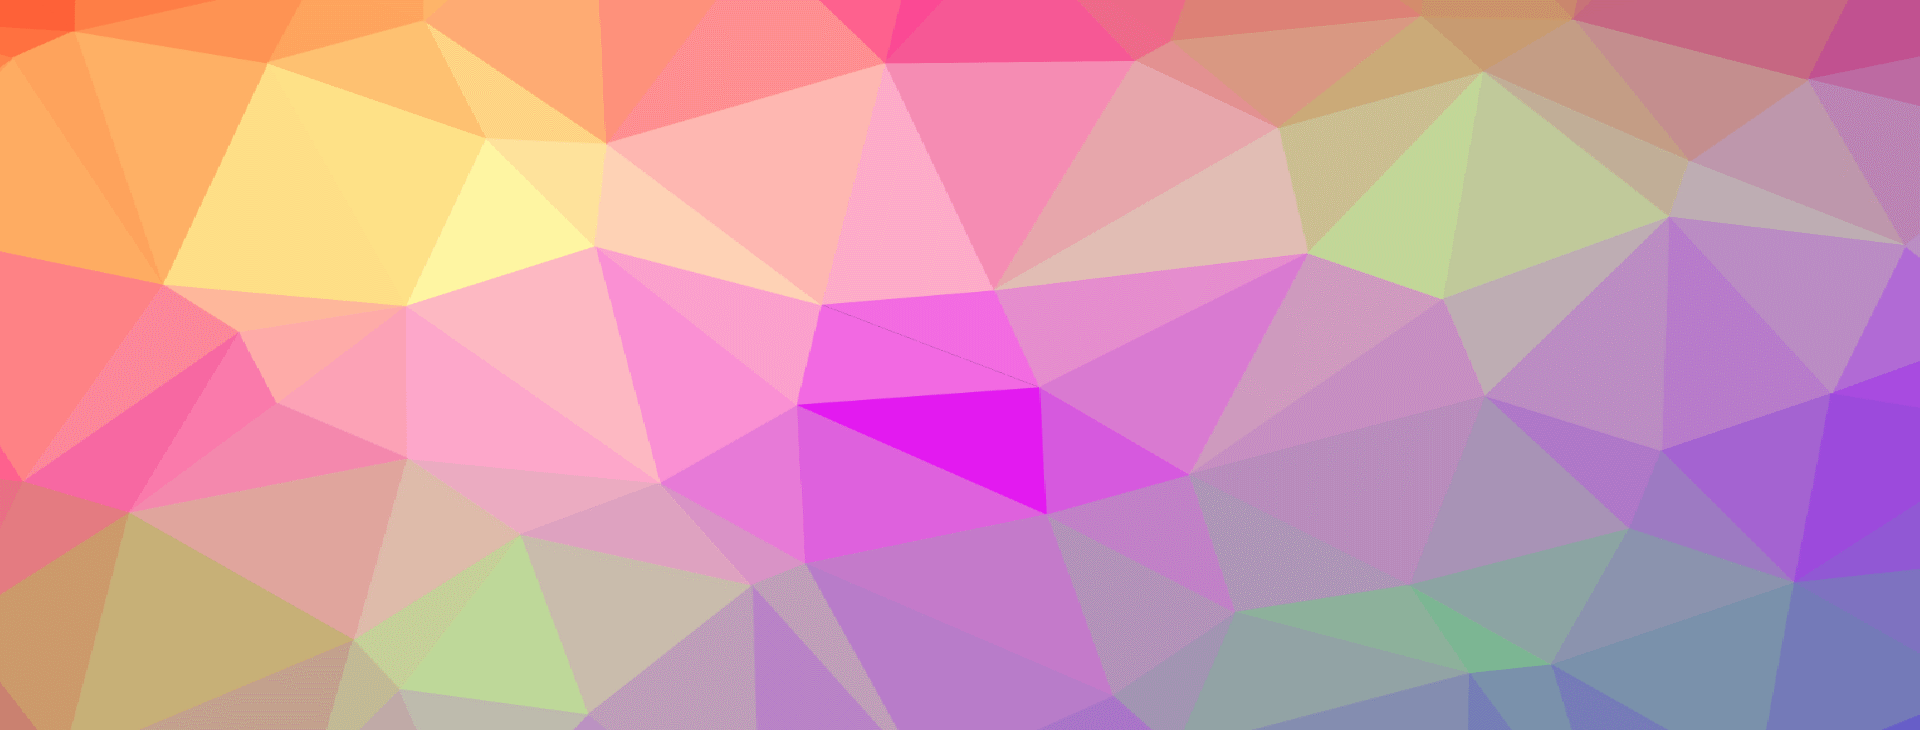 prism-background-slider.png